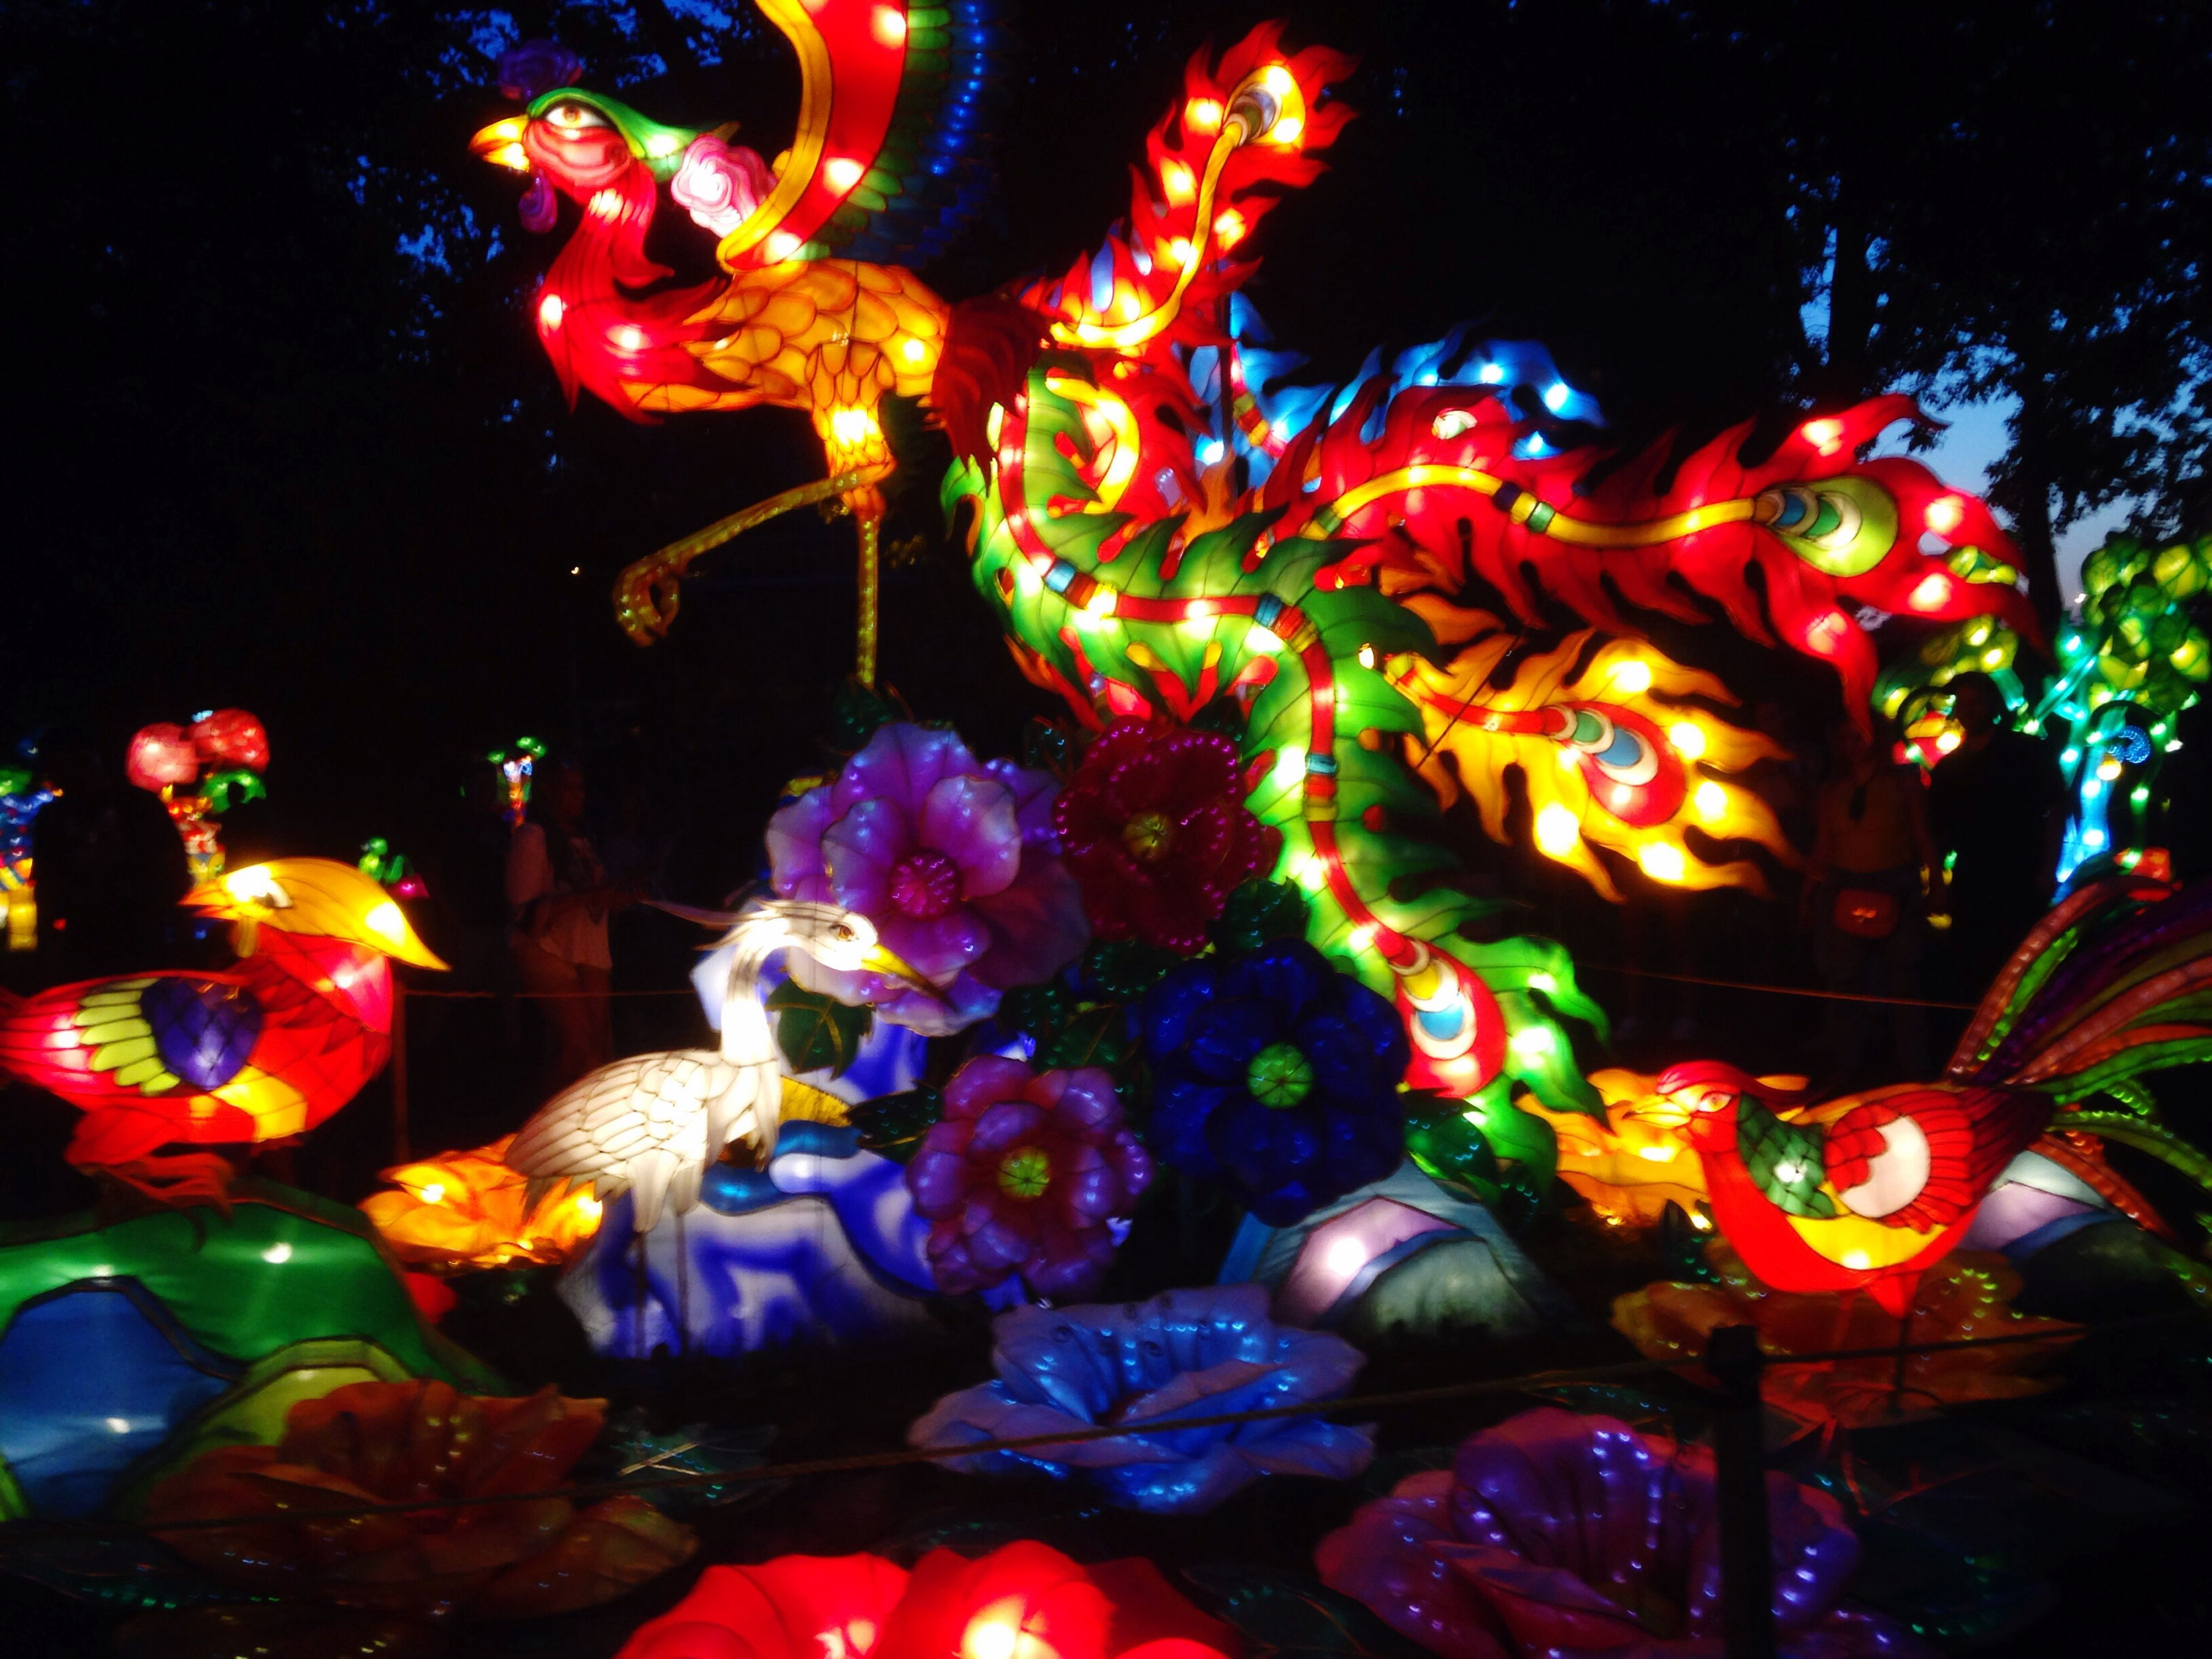 night, celebration, multi colored, illuminated, tradition, cultures, traditional festival, no people, low angle view, outdoors, christmas decoration, chinese dragon, dragon, close-up